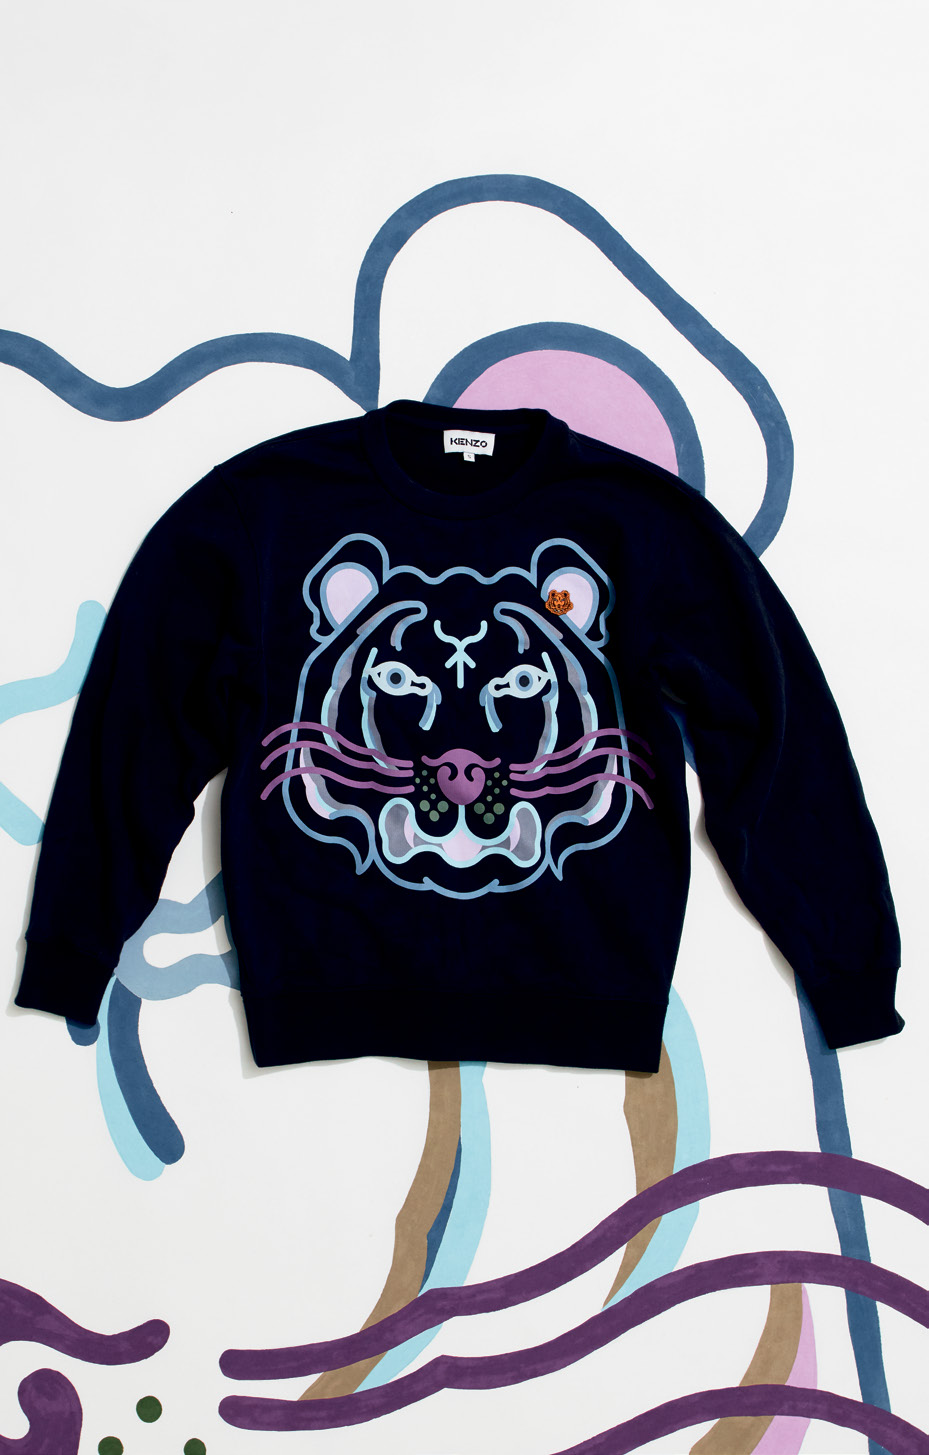 Kenzo Launches Second Capsule Collection In Partnership With WWF